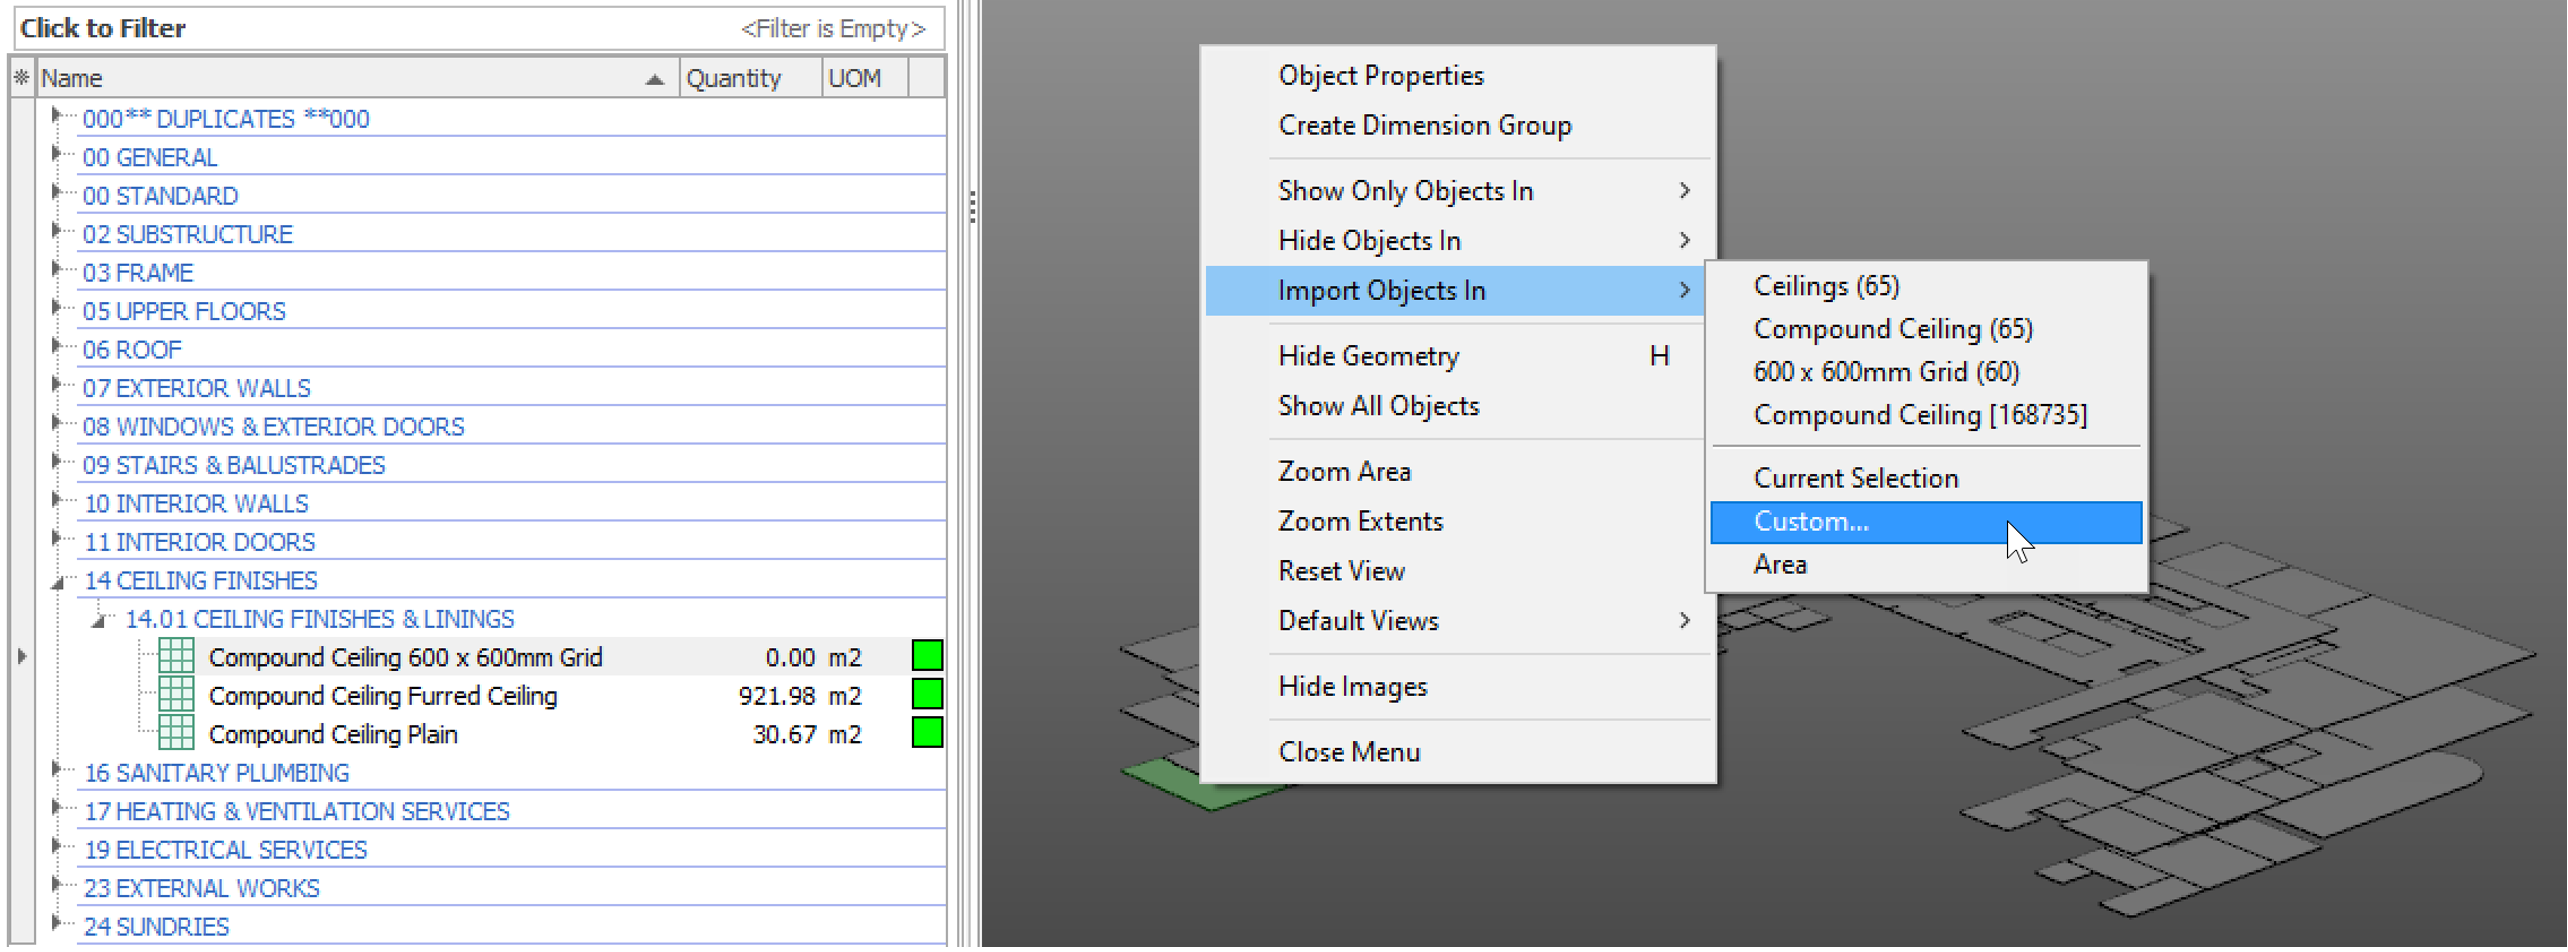 iTWO costX Selecting objects with one or more common properties